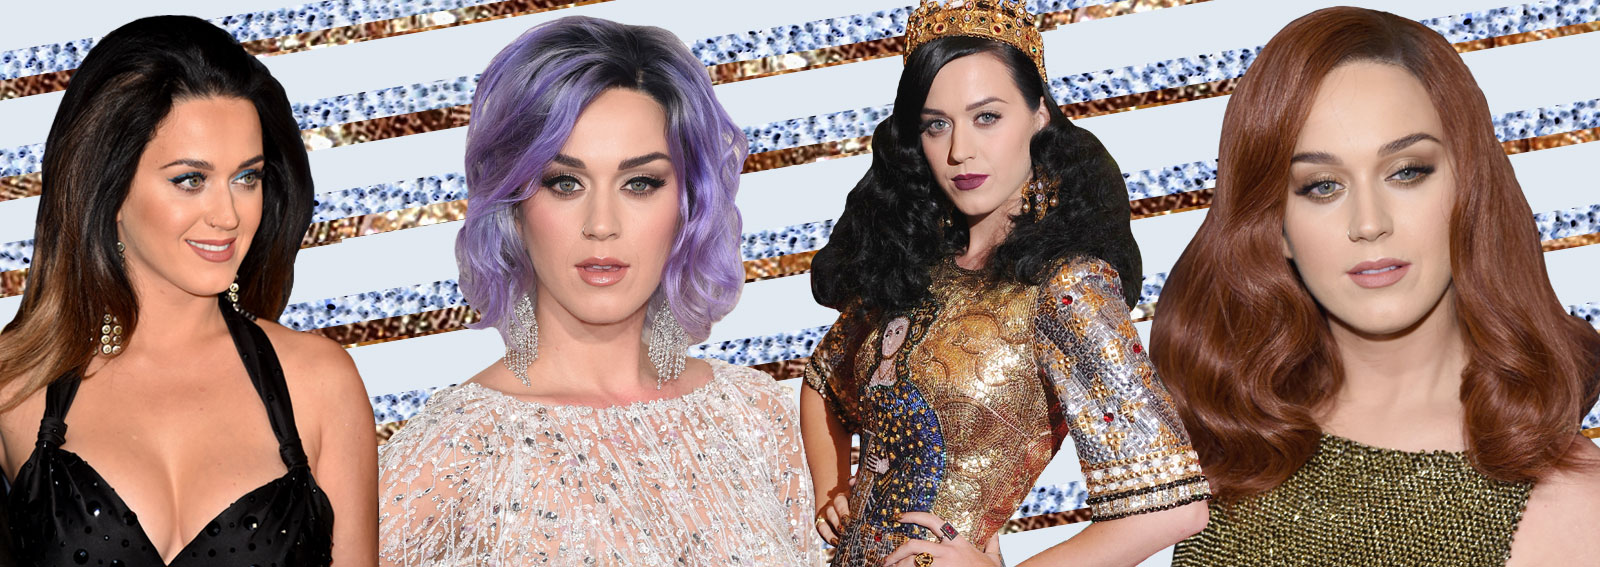 cover-katy-perry-i-beauty-look-desktop